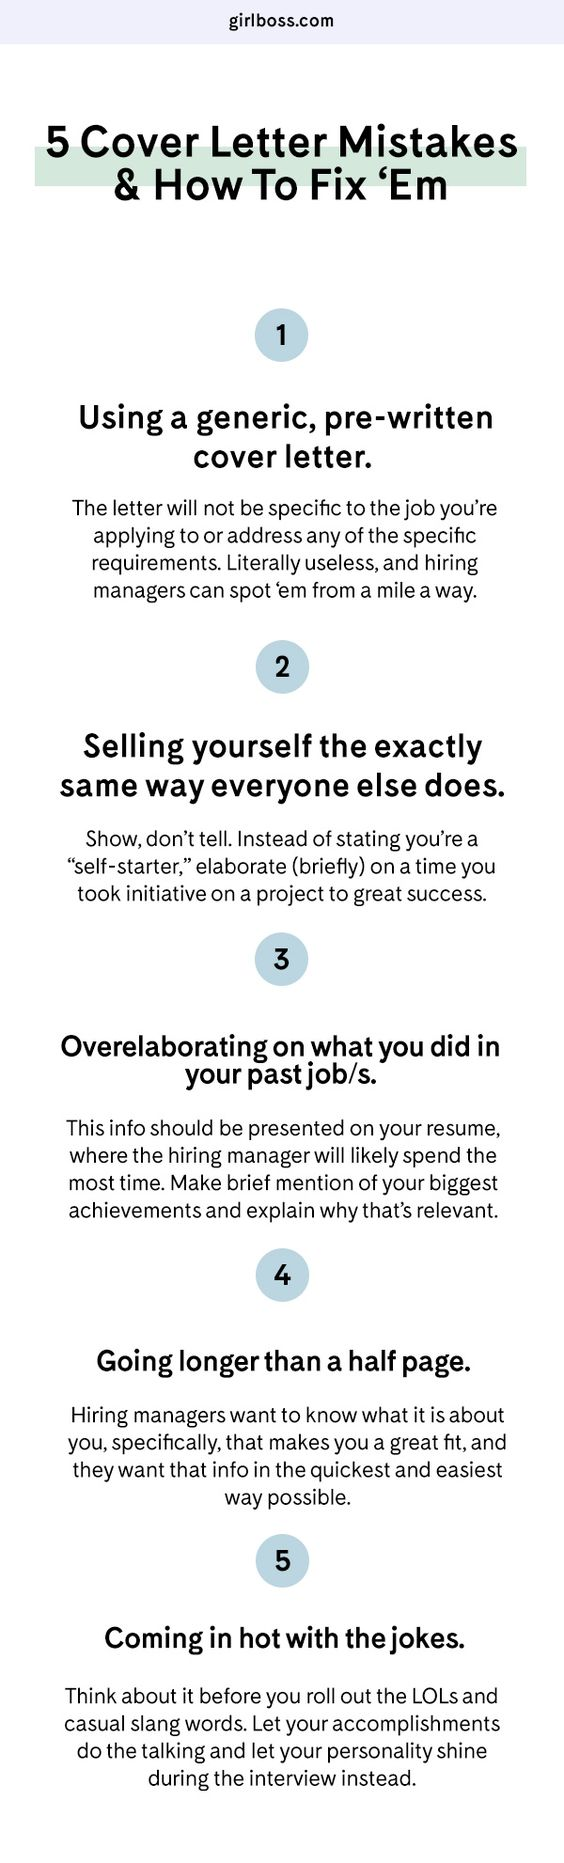 GirlbossCom  Cover Letter Mistakes  How To Fix Them  Job